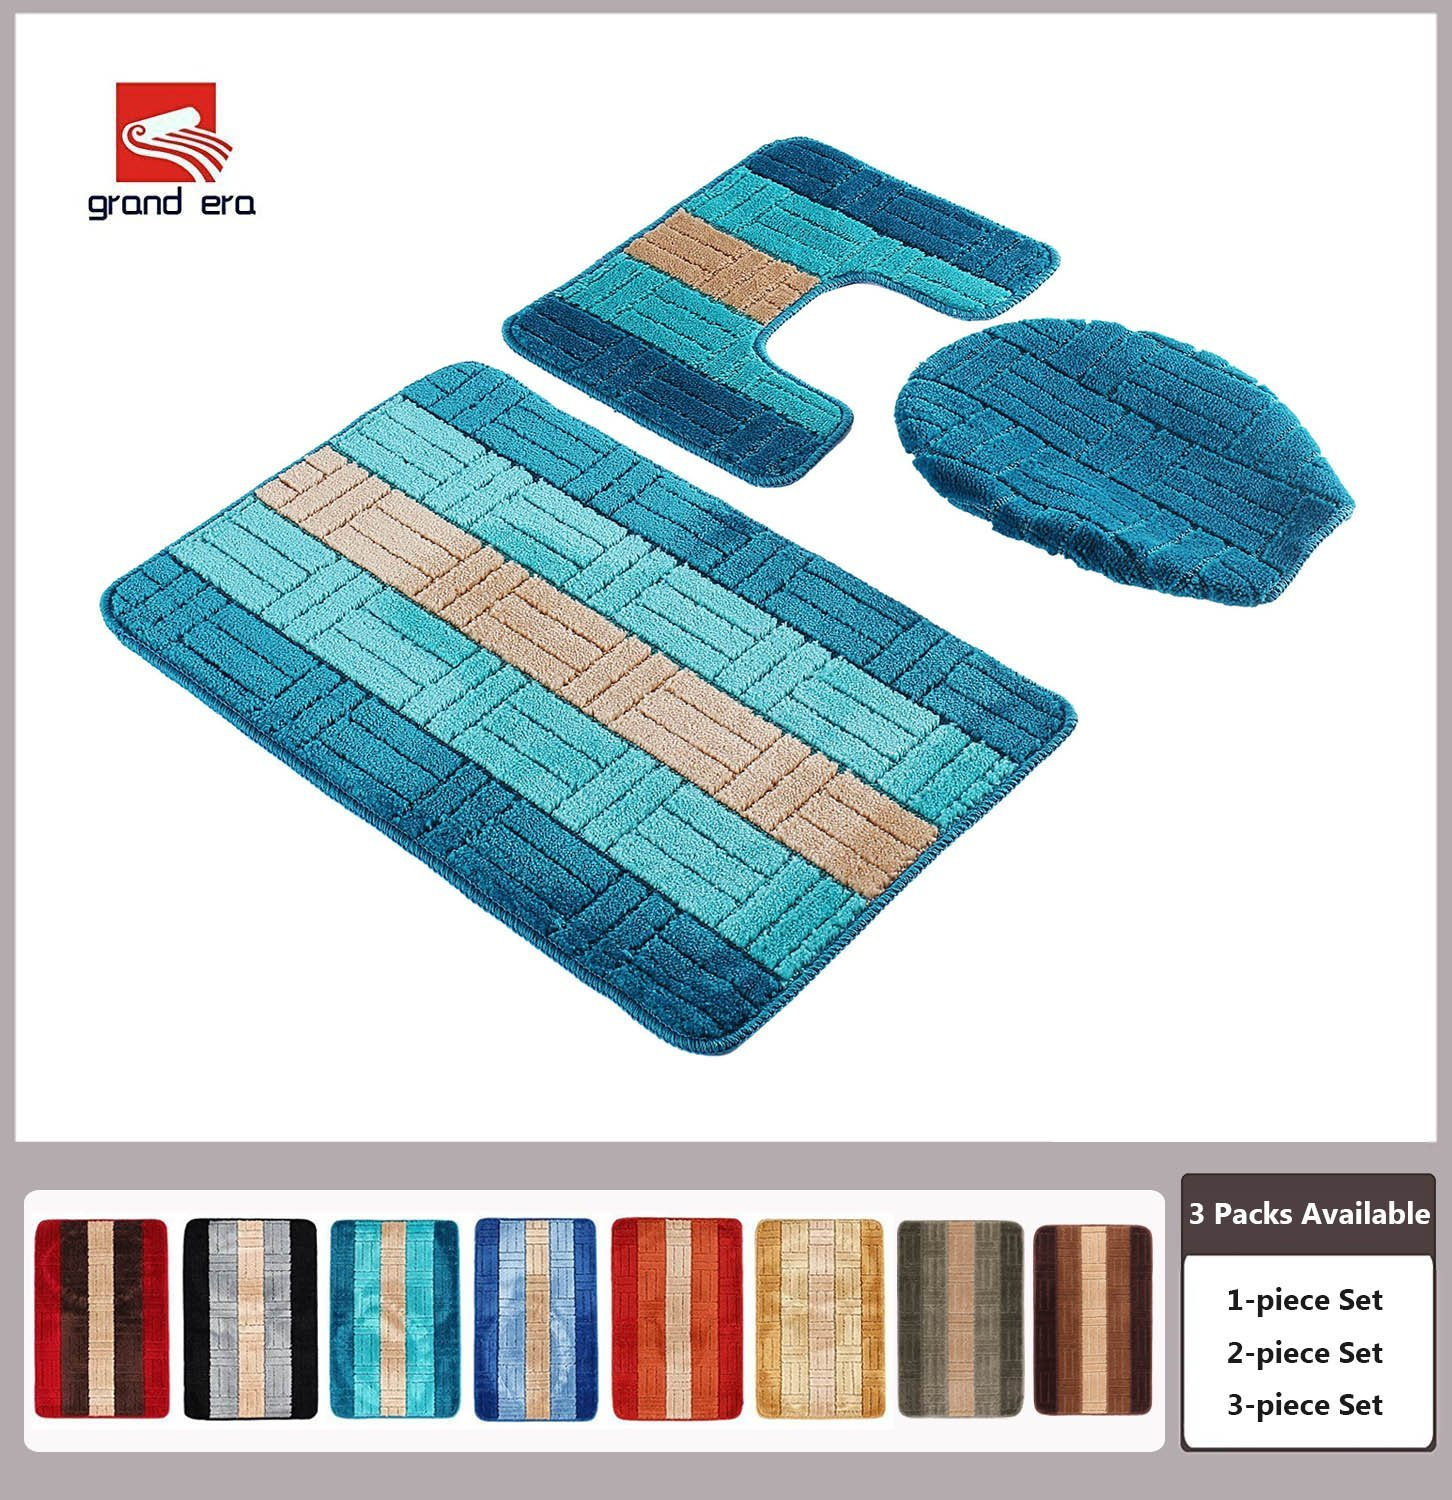 "Grand Era 3 Piece Bathroom Rug Polypropylene Fiber Mat Set and Contour Rug Set (19.7""x31.5"") (19.7""x15.7"") (18.1""x18.9"") with Lid Cover"